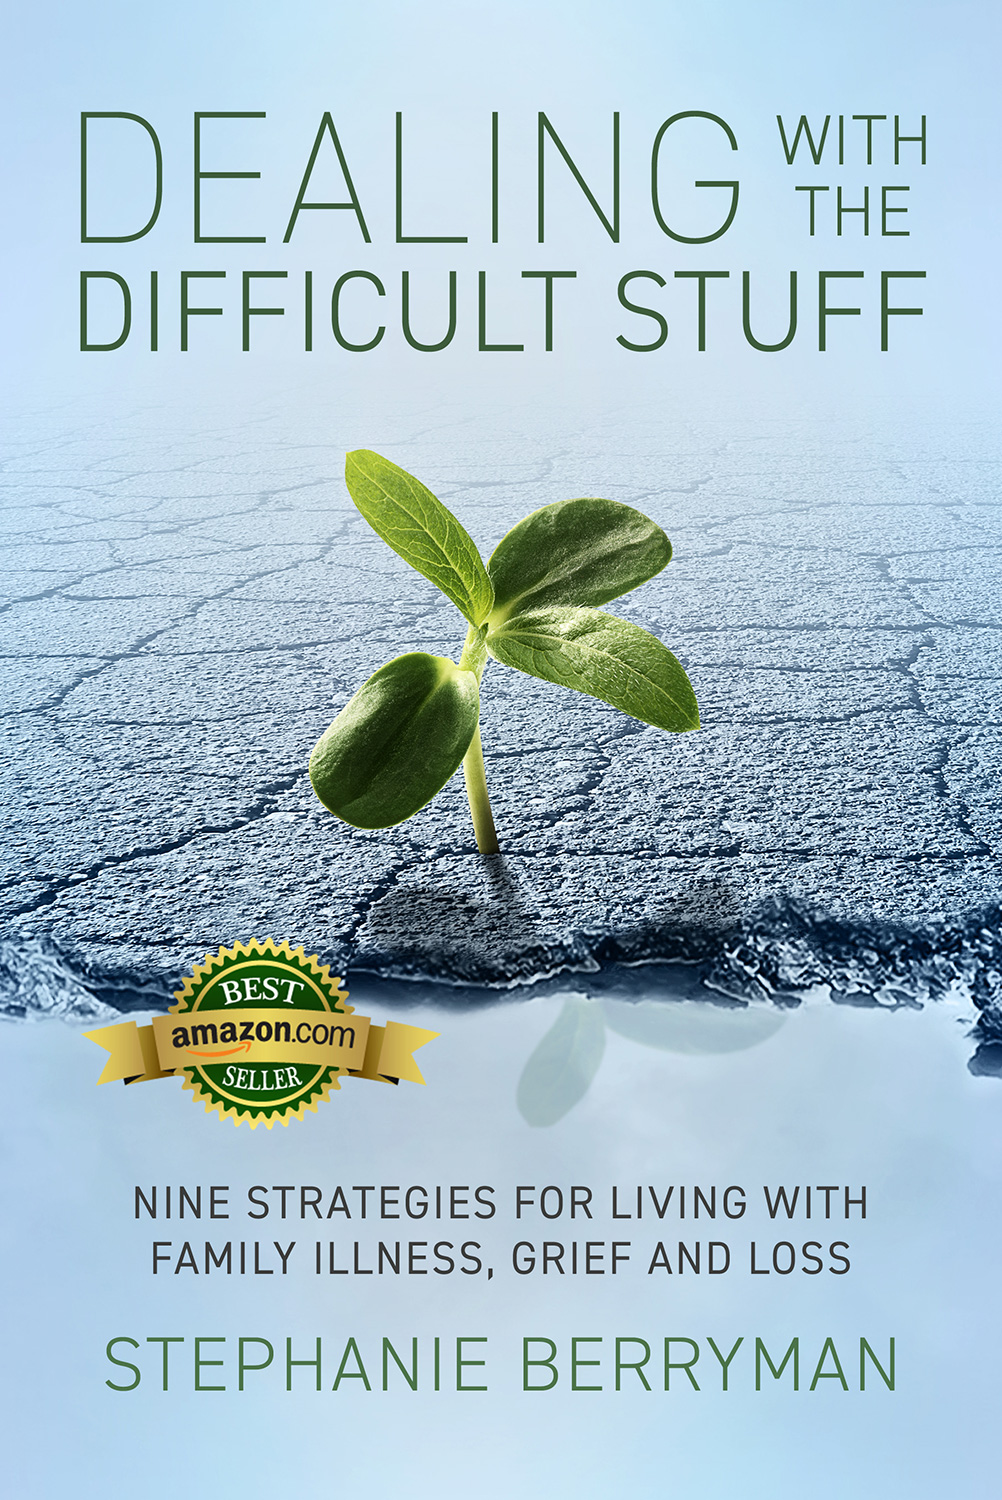 Dealing with the Difficult Stuff